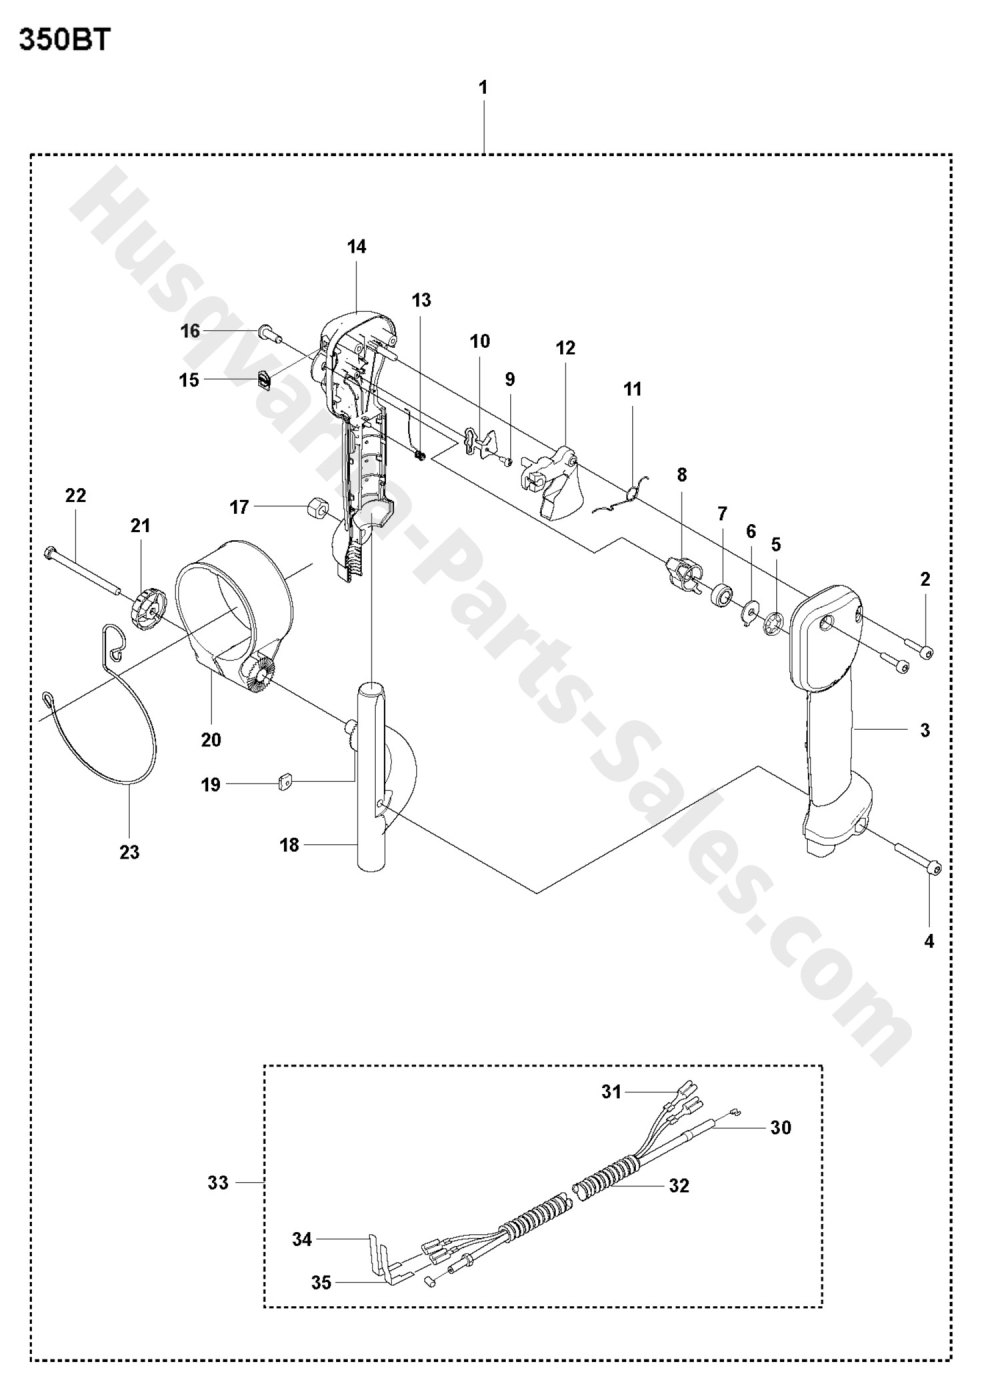 medium resolution of husqvarna bt150 parts diagrams wiring diagrams u2022 rh 18 eap ing de husqvarna leaf blower 125bvx parts husqvarna leaf blower